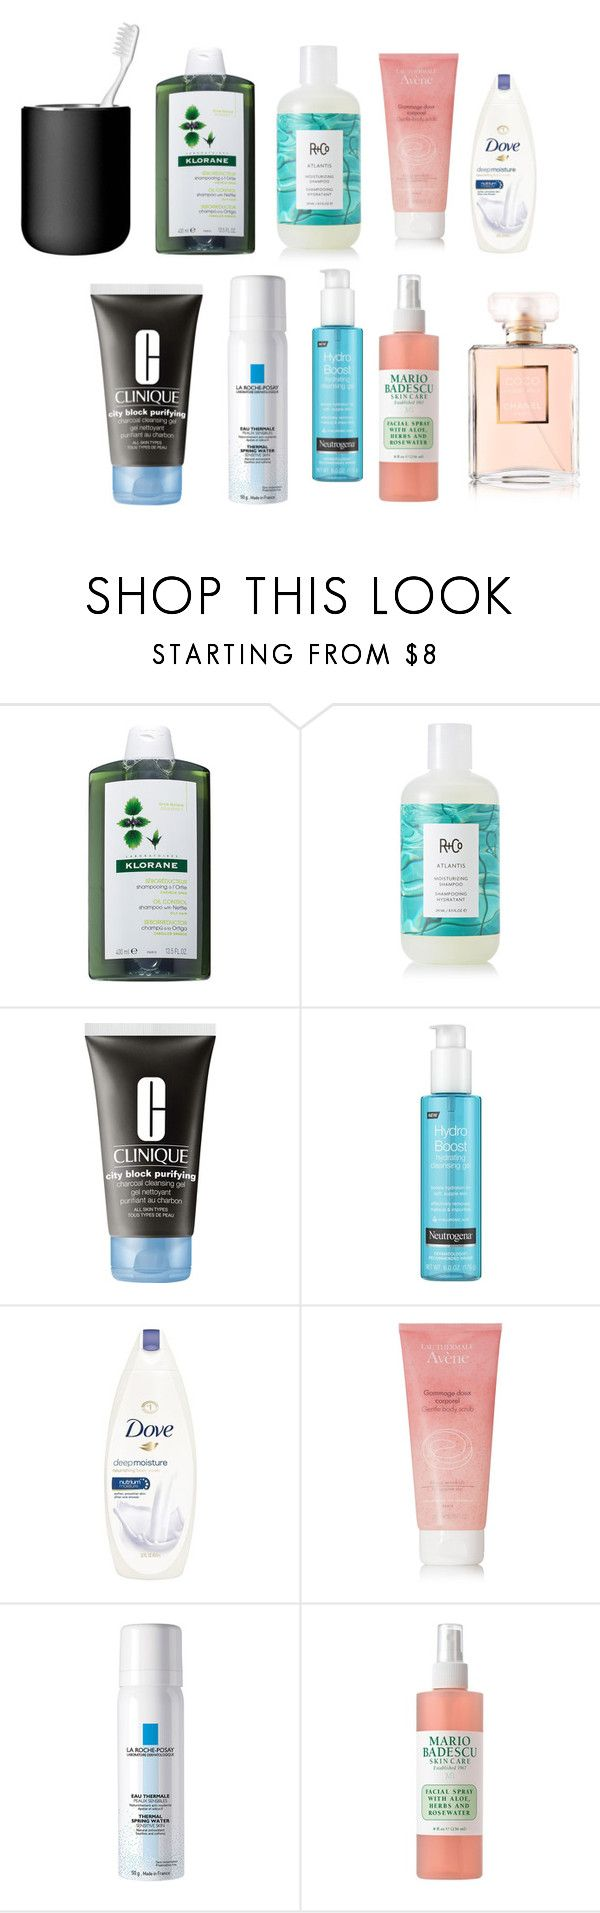 """morning routine🌷🌹"" by alessiaaaaaaaaa ❤ liked on Polyvore featuring Klorane, R+Co, Clinique, Neutrogena, Avène, La Roche-Posay, Mario Badescu Skin Care and Menu"